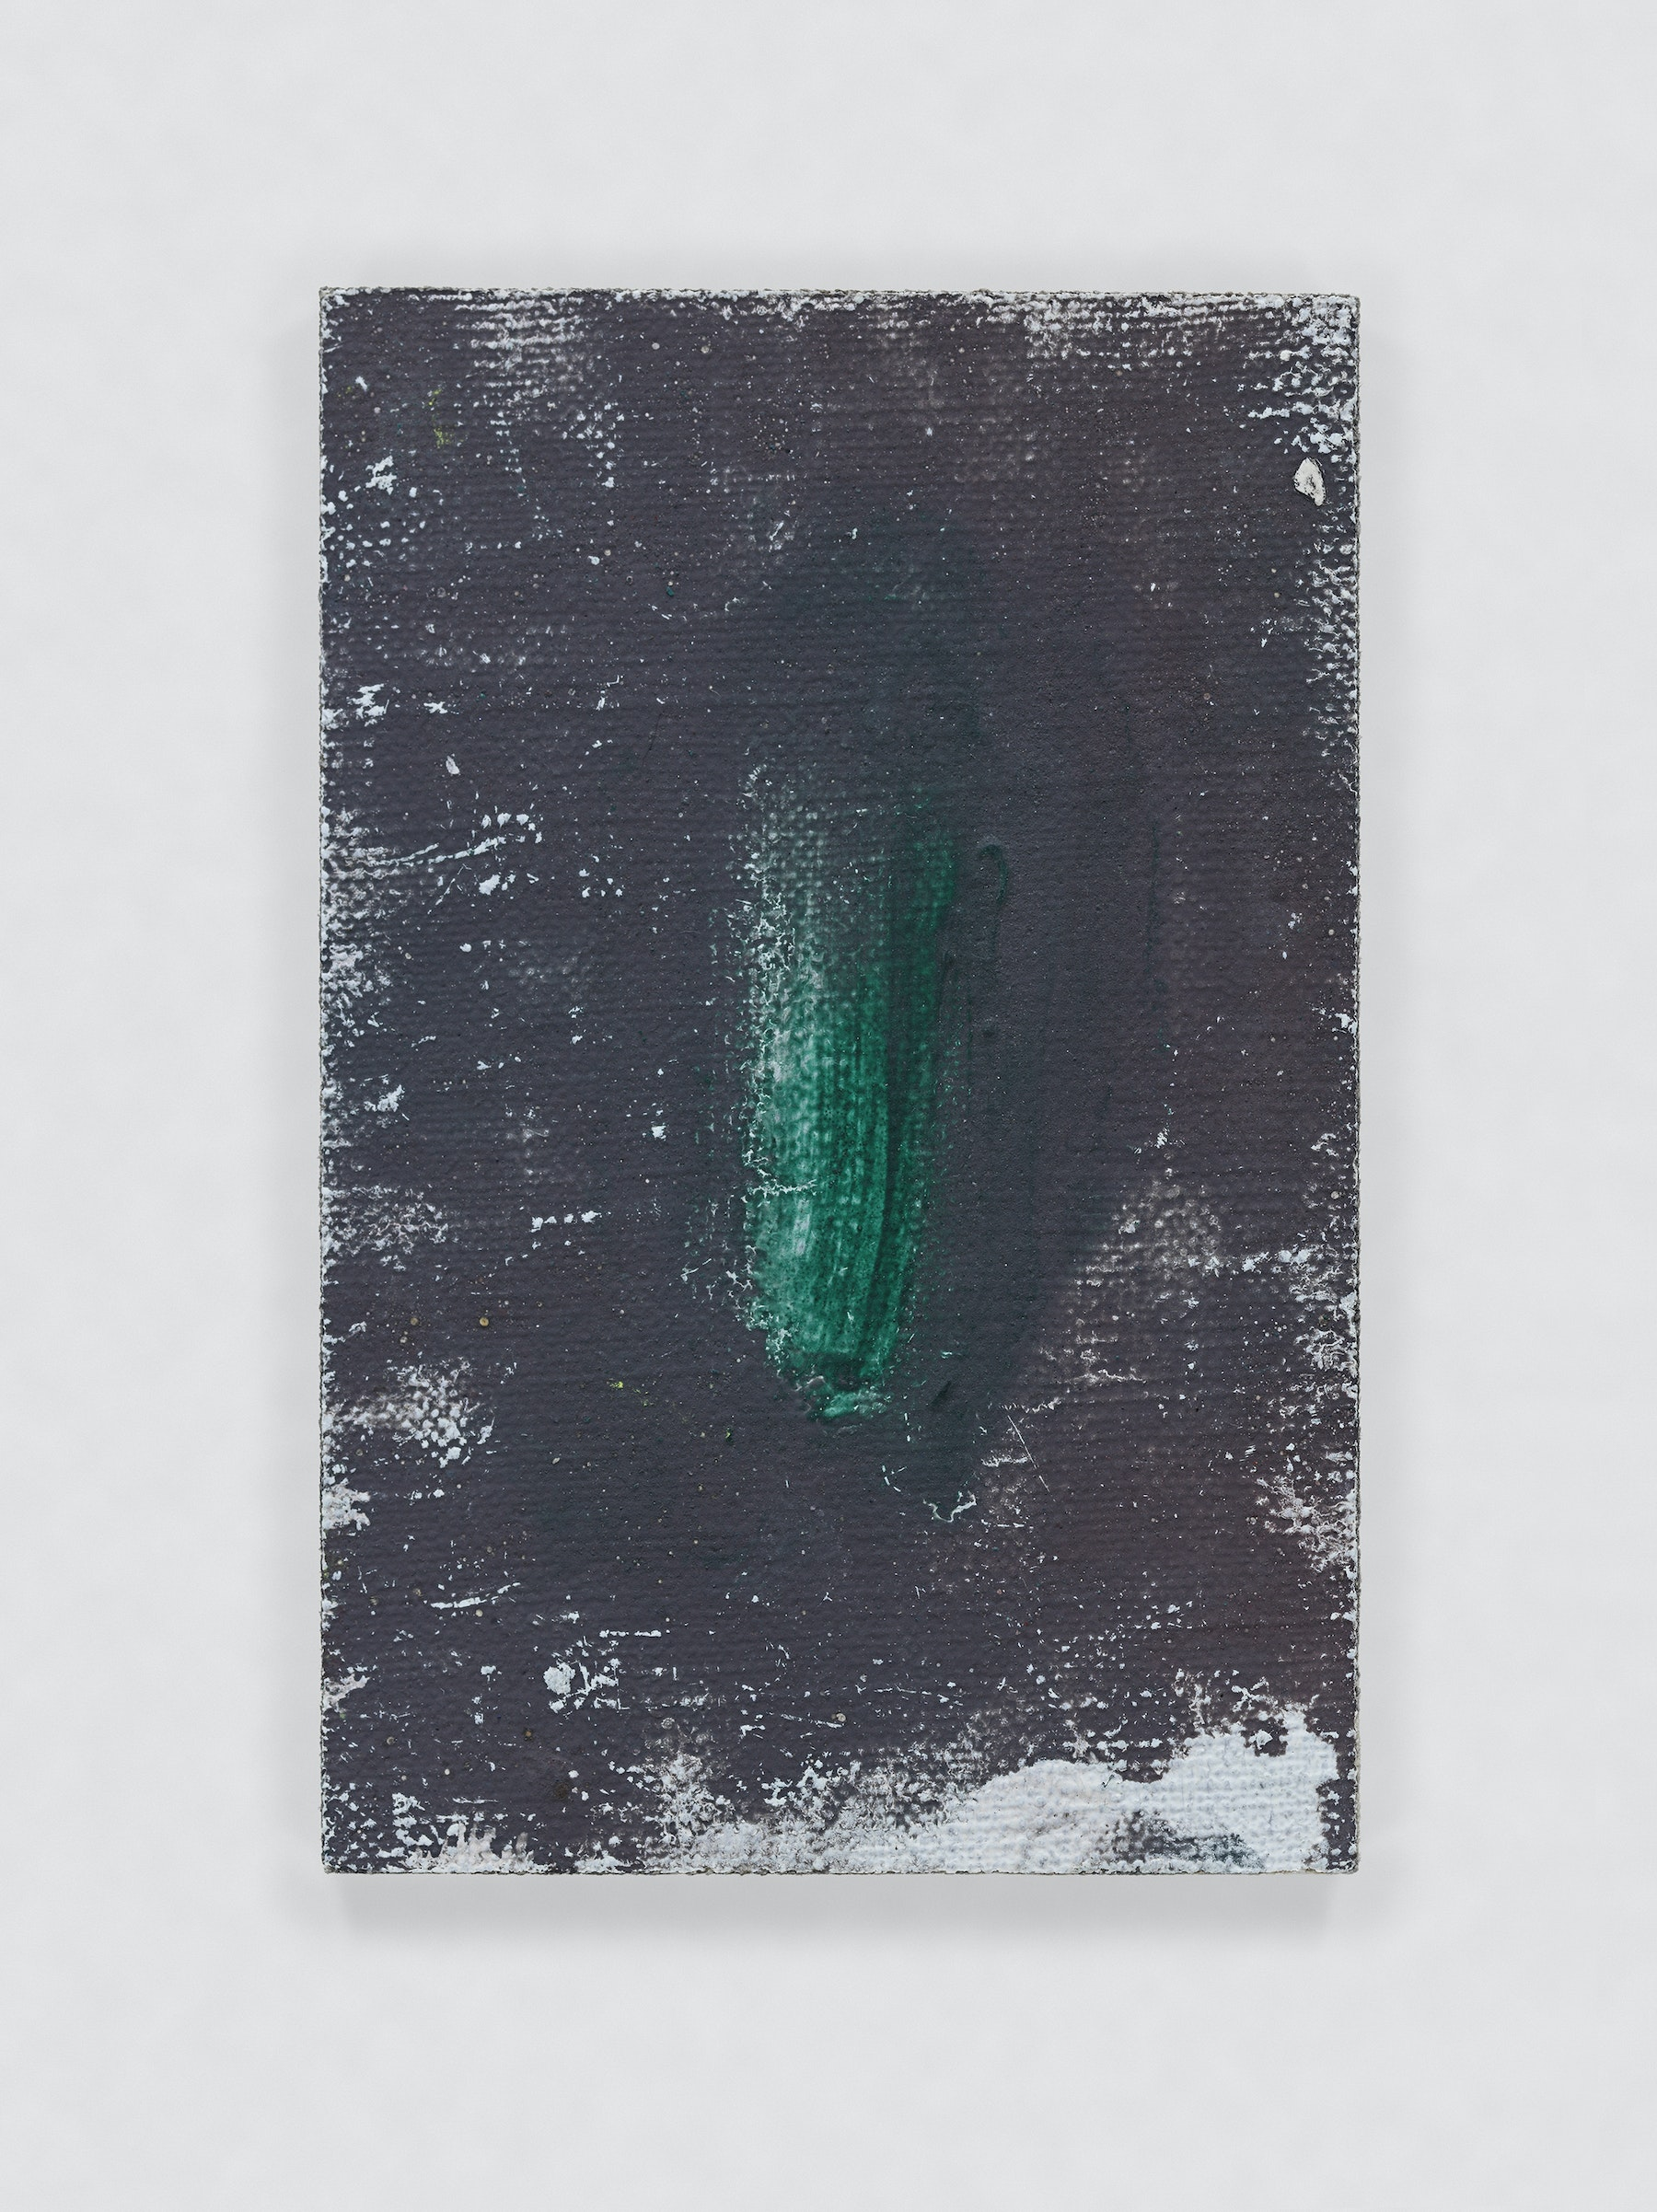 """Louise Fishman """"UNTITLED,"""" 2011 Oil on board 3 x 2"""" [HxW] (7.62 x 5.08 cm) Inventory #FIS136 Courtesy of the artist and Vielmetter Los Angeles Photo credit: Genevieve Hanson Signed and dated on verso"""